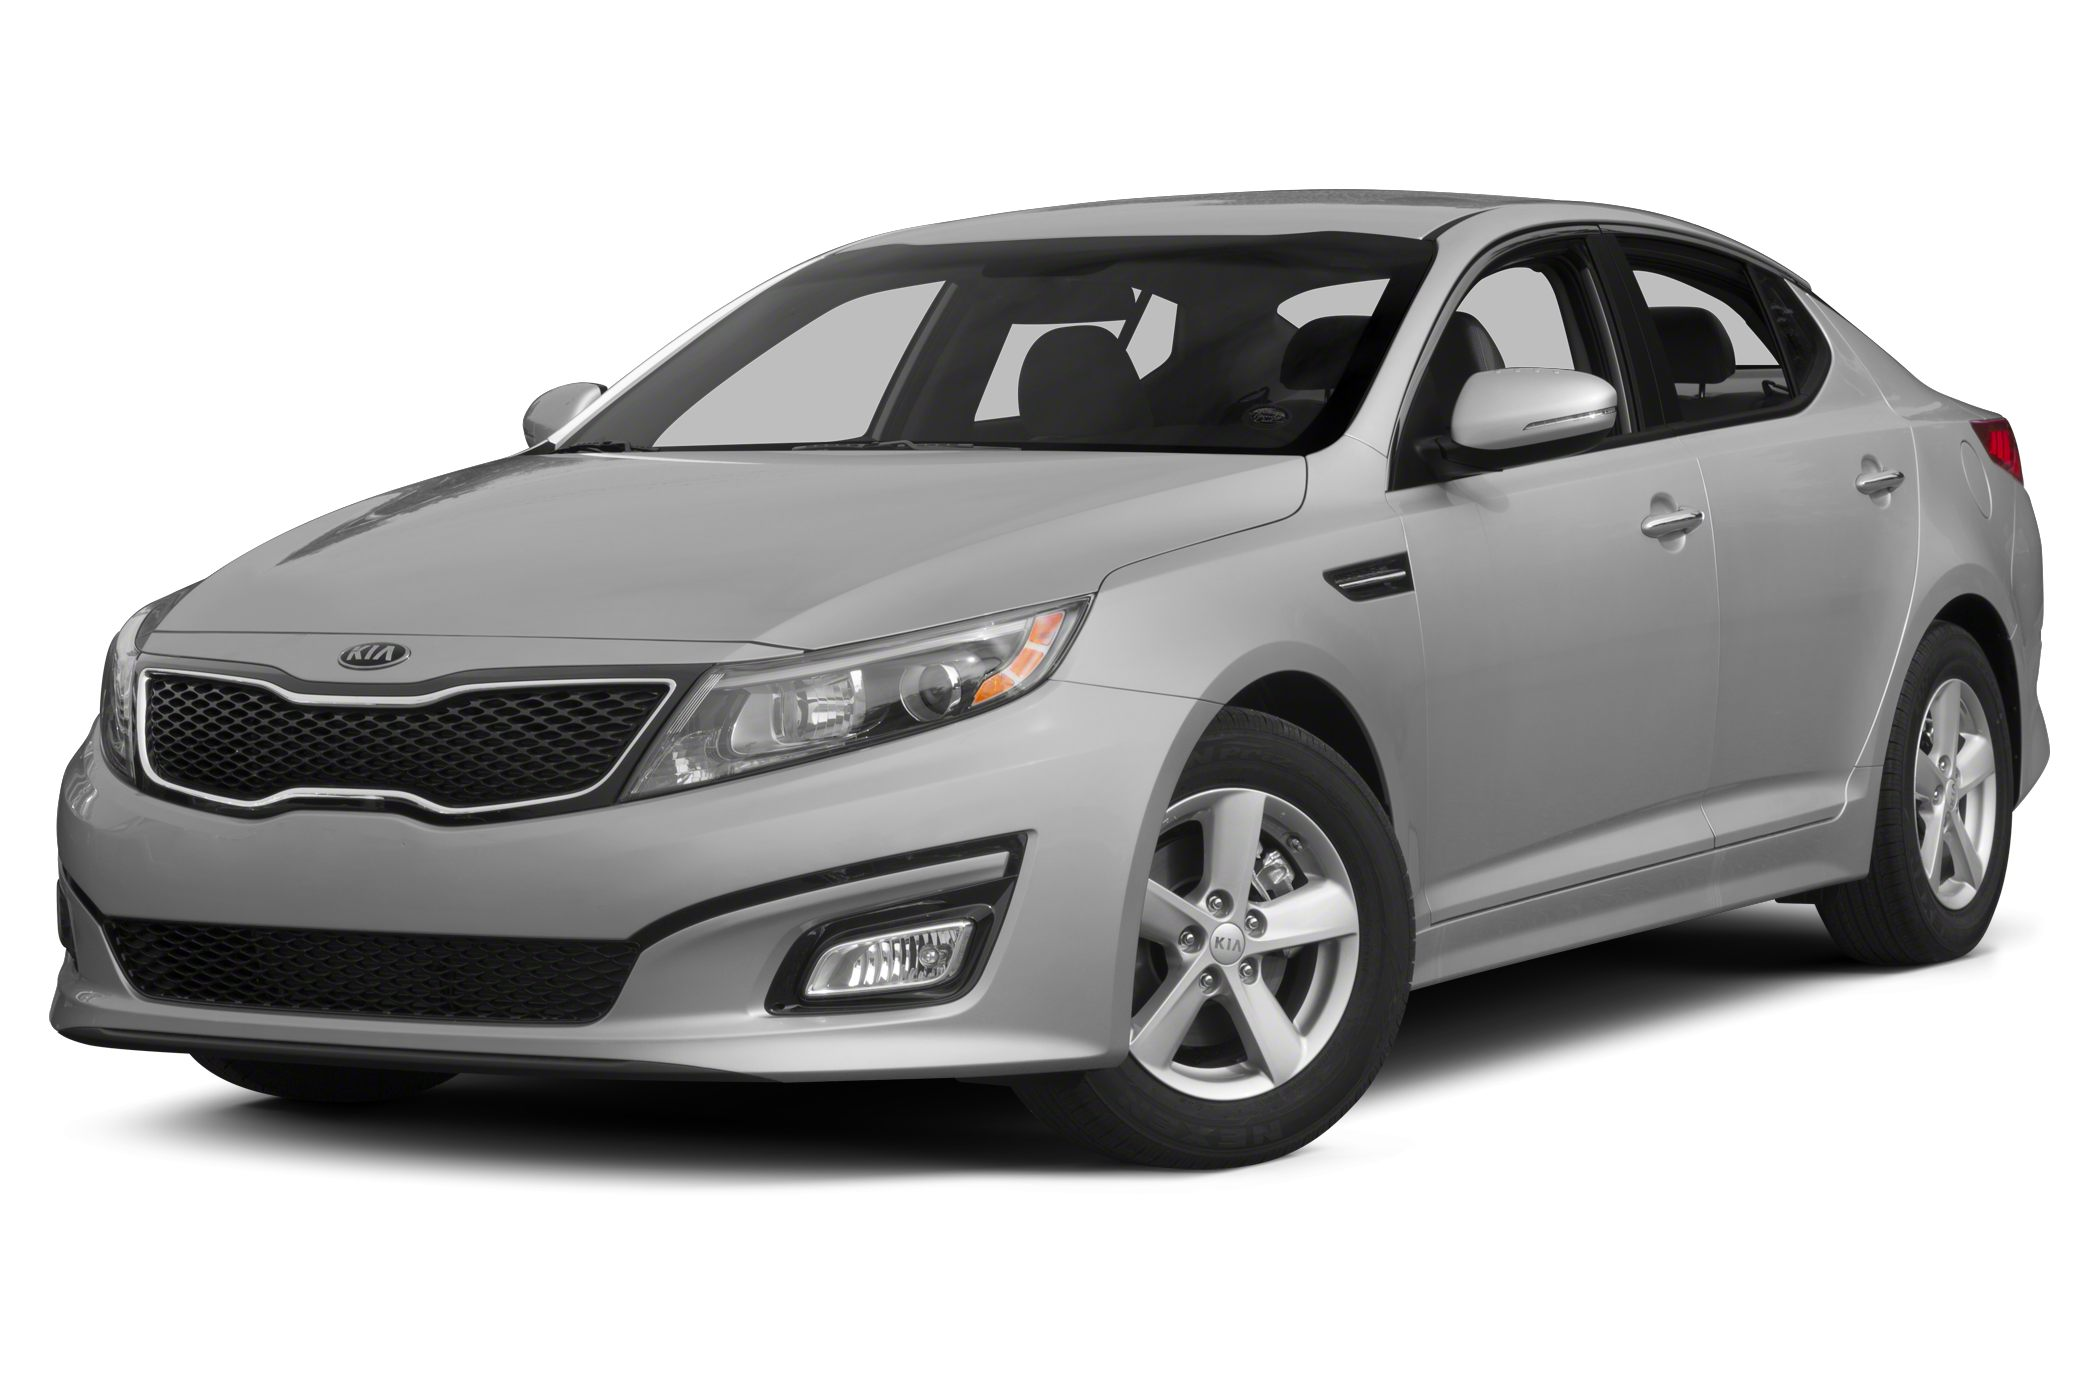 2014 Kia Optima SX Sedan for sale in Fayetteville for $31,840 with 11 miles.